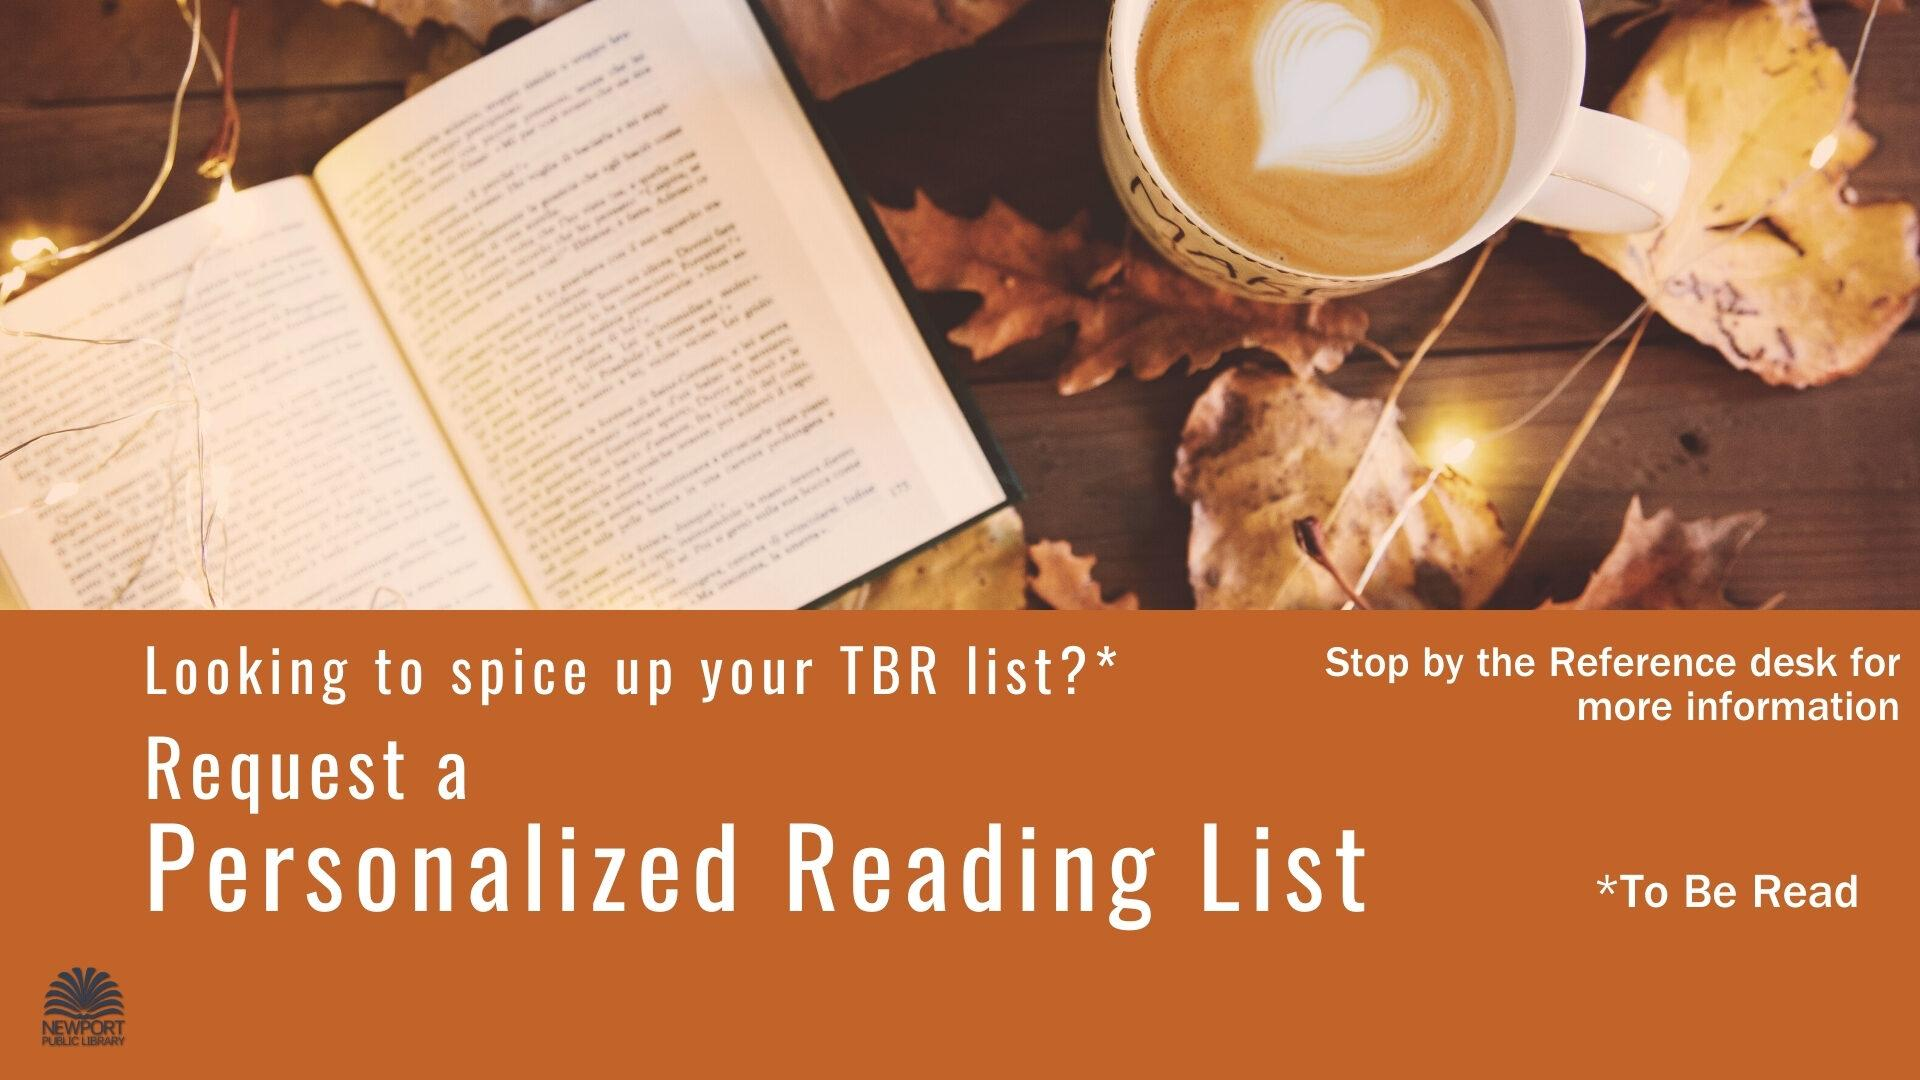 Personalized Reading Lists